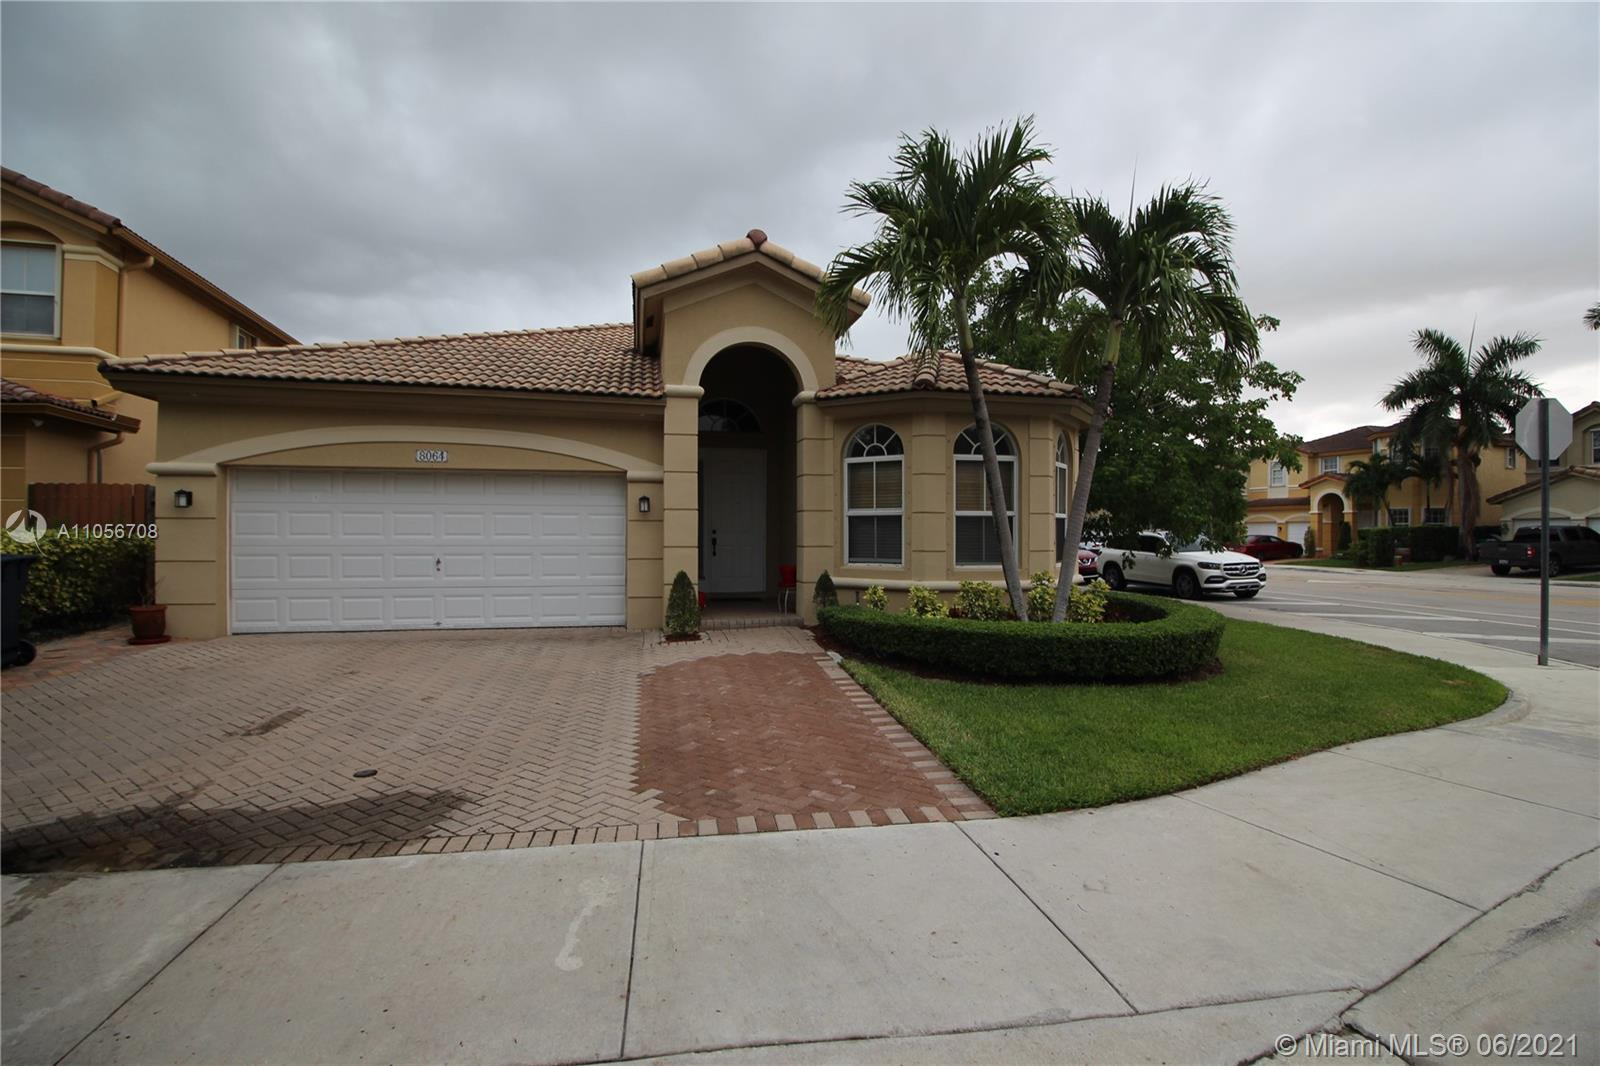 Islands At Doral - 8064 NW 111th Ct, Doral, FL 33178